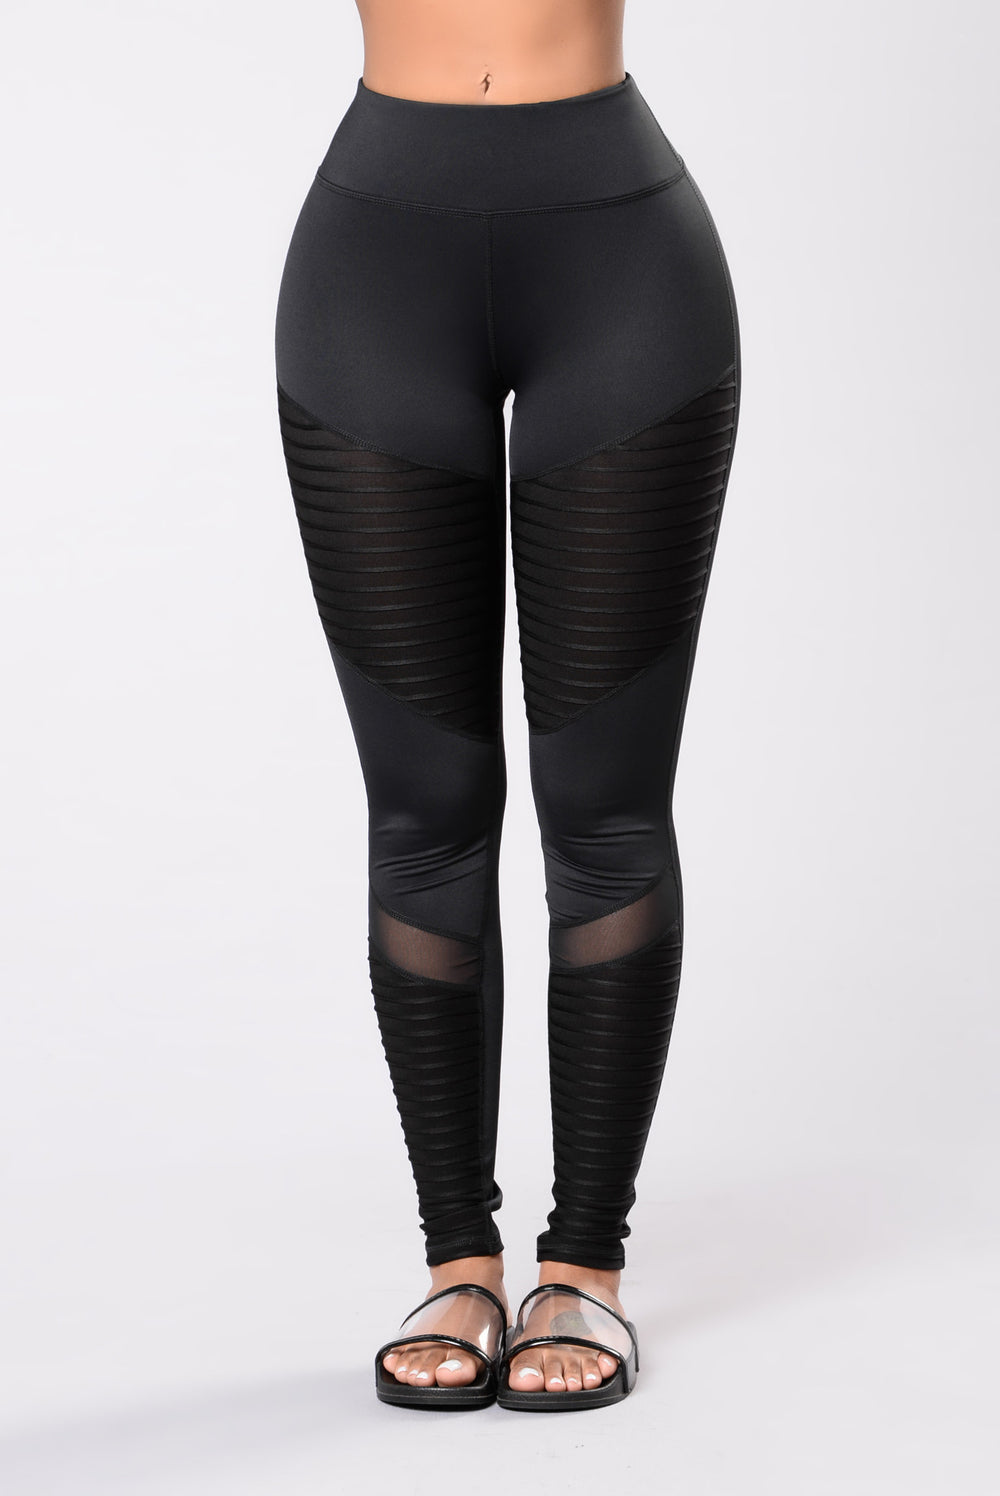 All black leggings for women